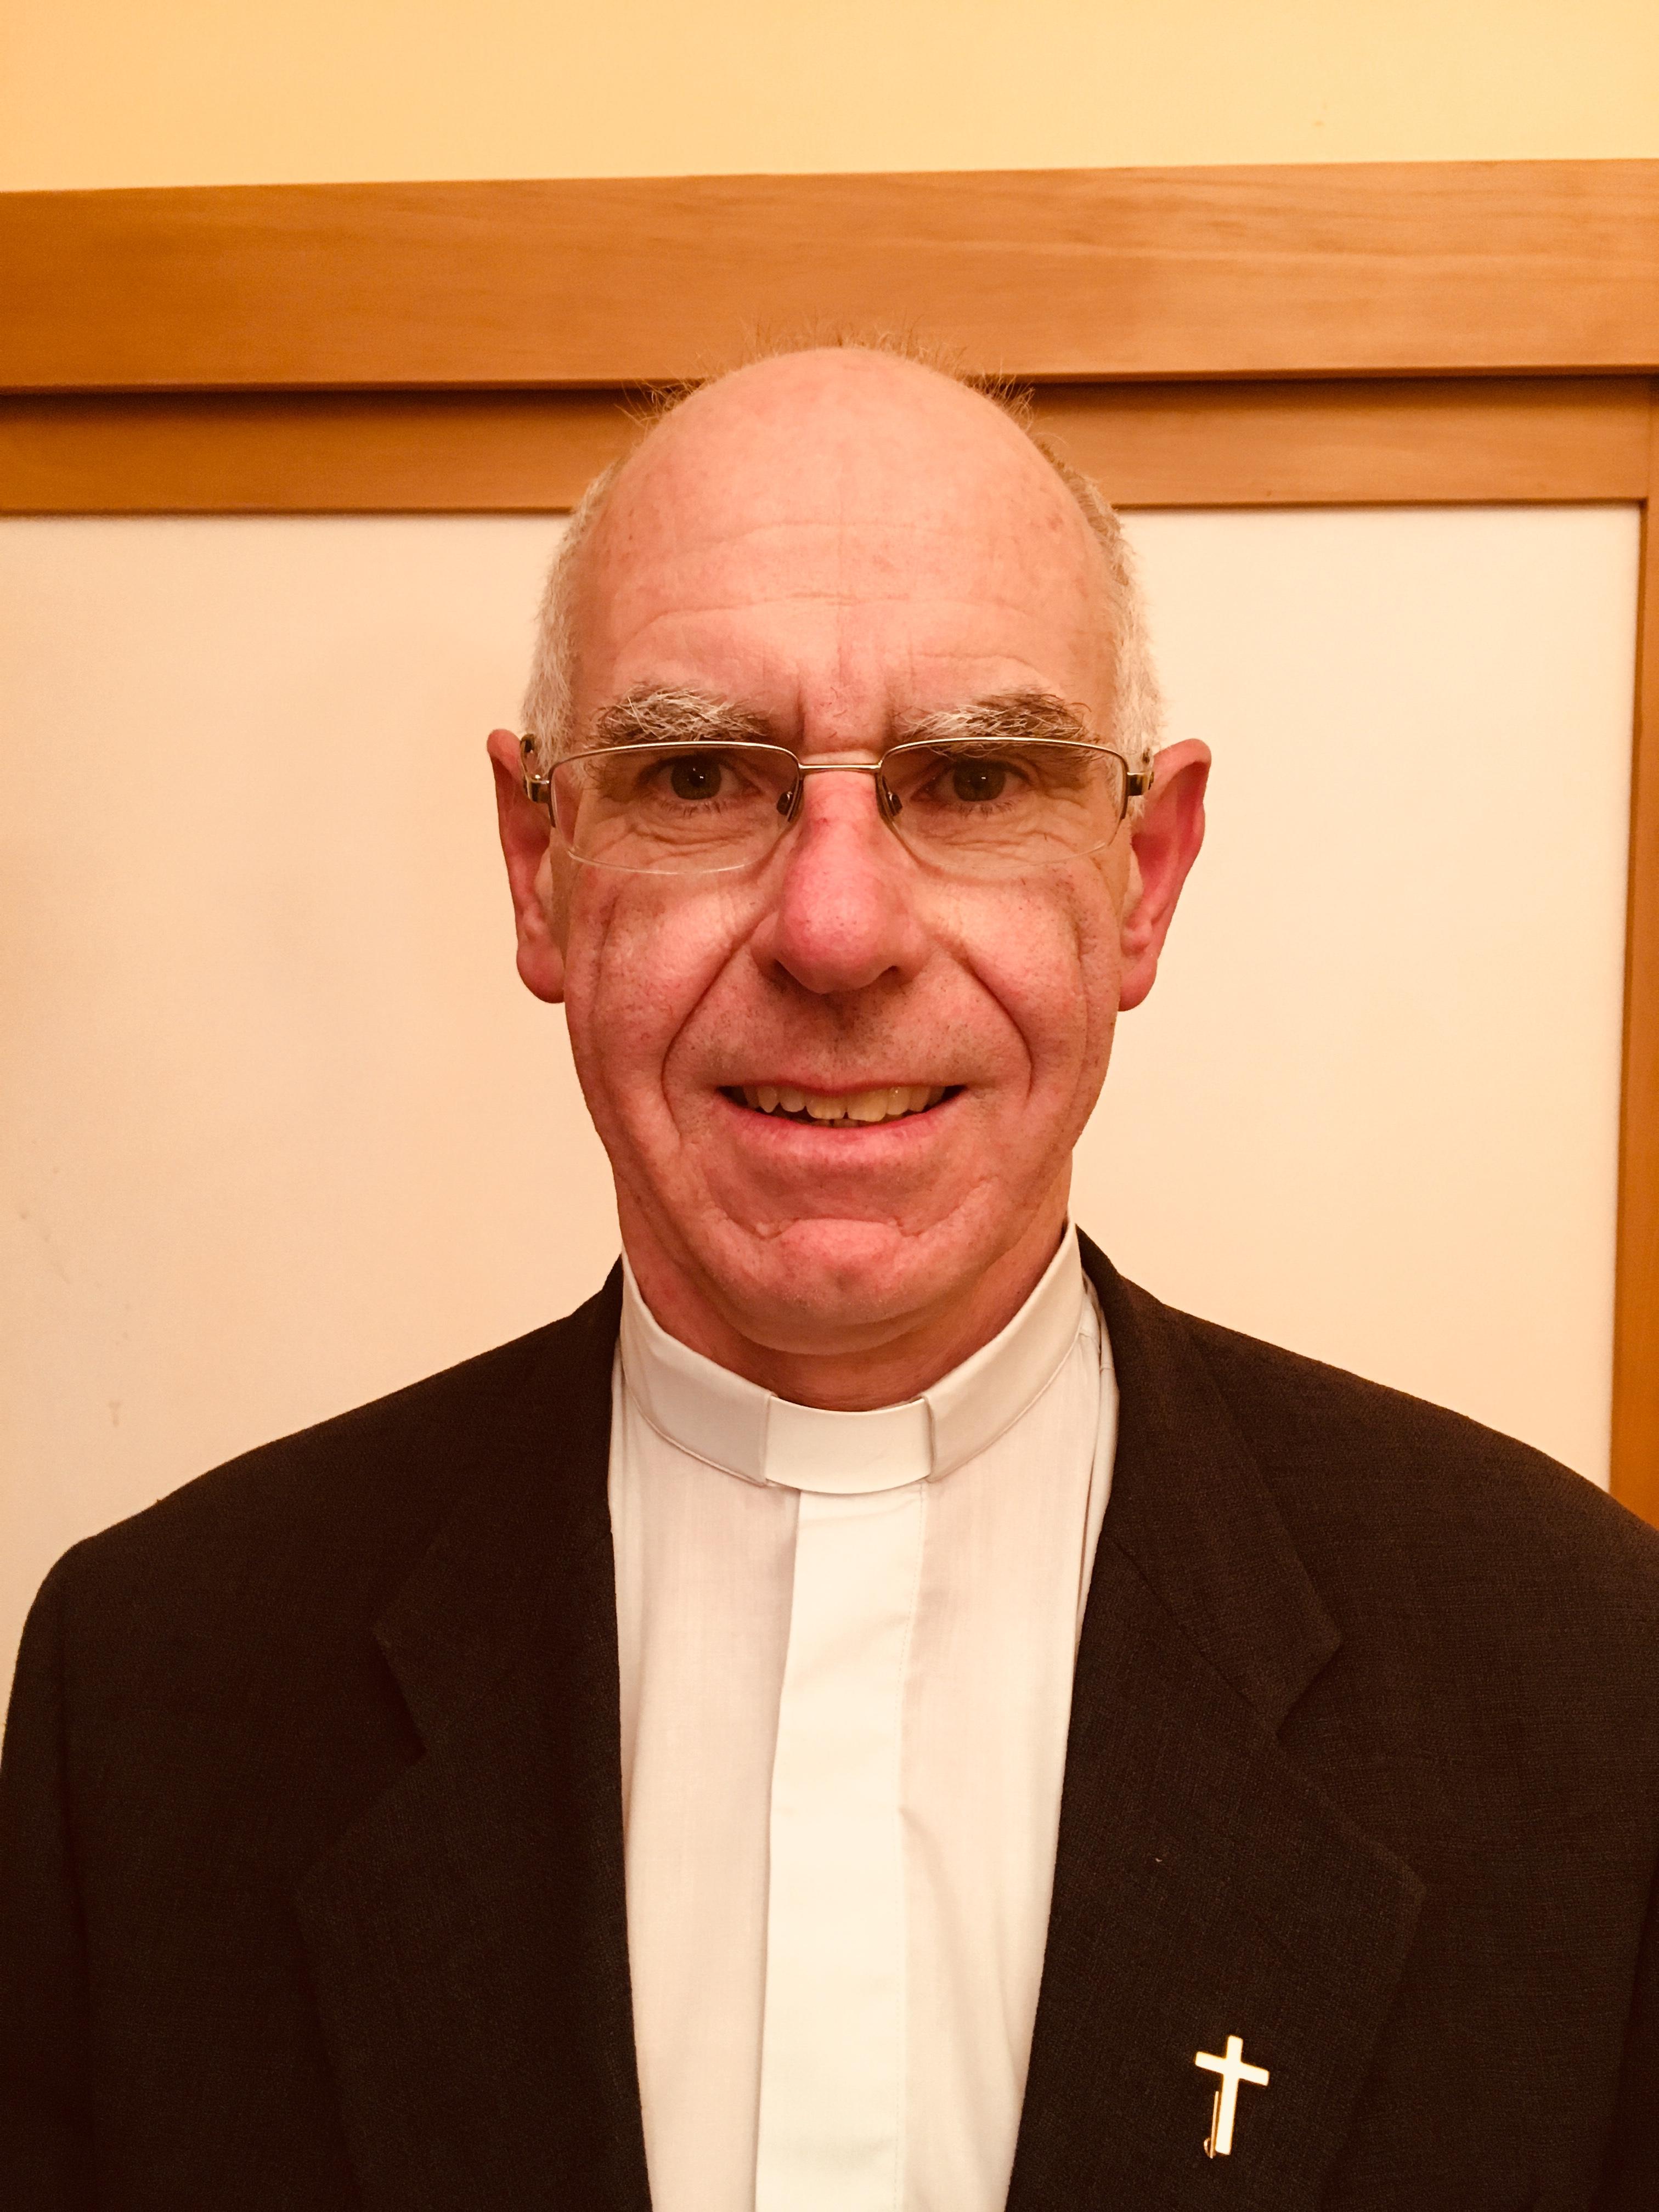 Bishop Elect Michael Dooley